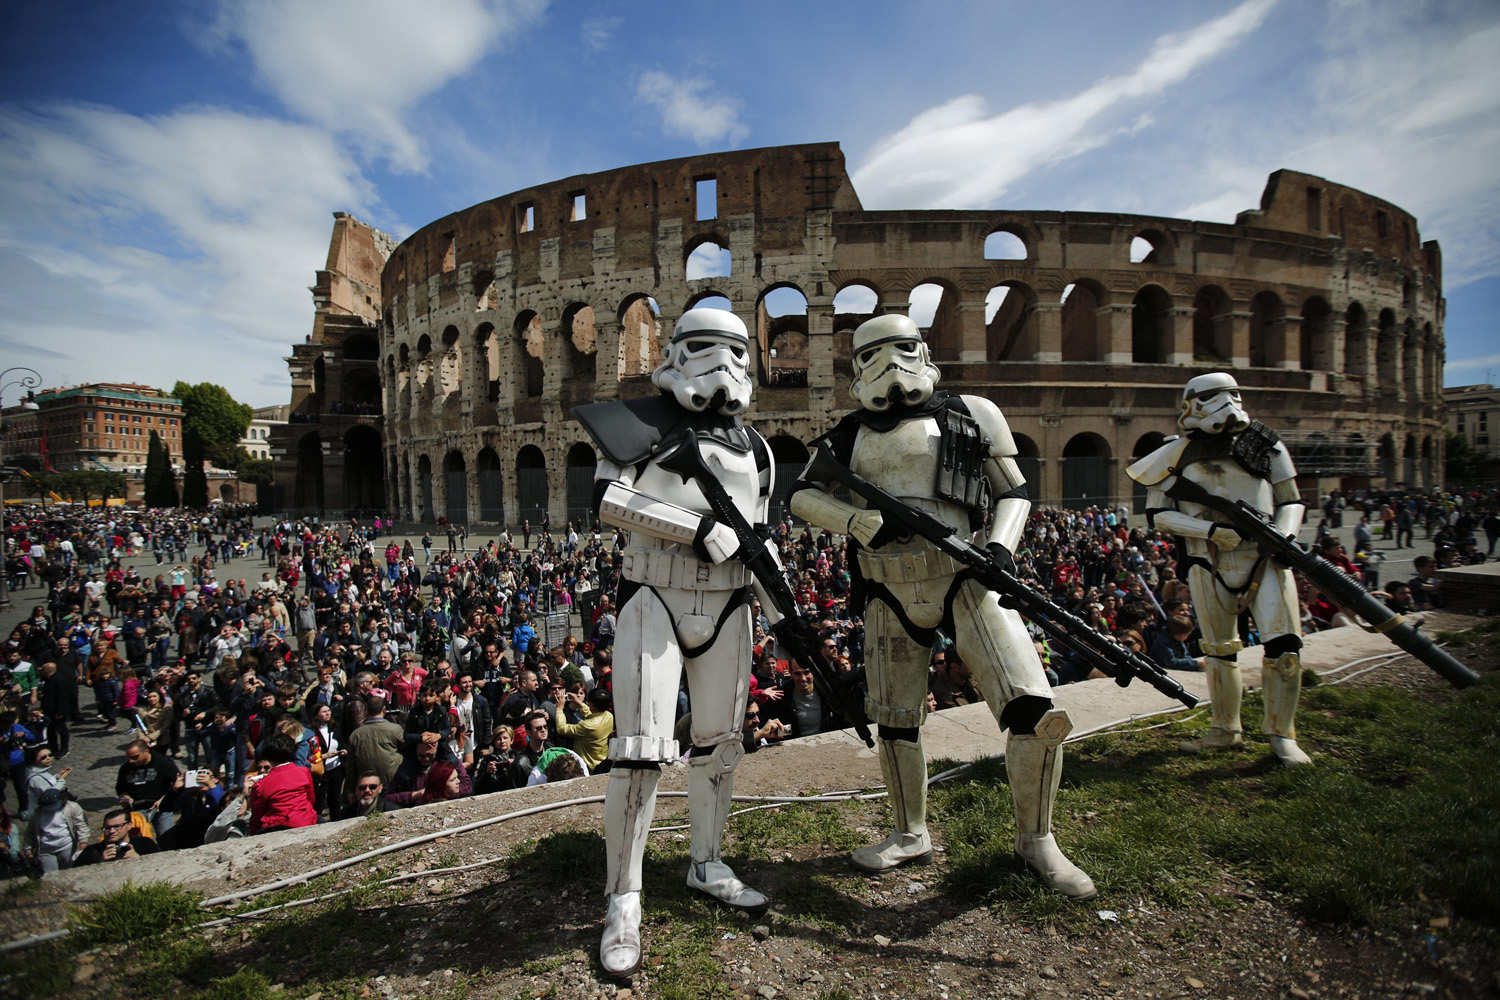 May 4, 2014. Members of the Star Wars fan club dressed as stormtroopers celebrate Star Wars Day in front of the Colosseum in central Rome.